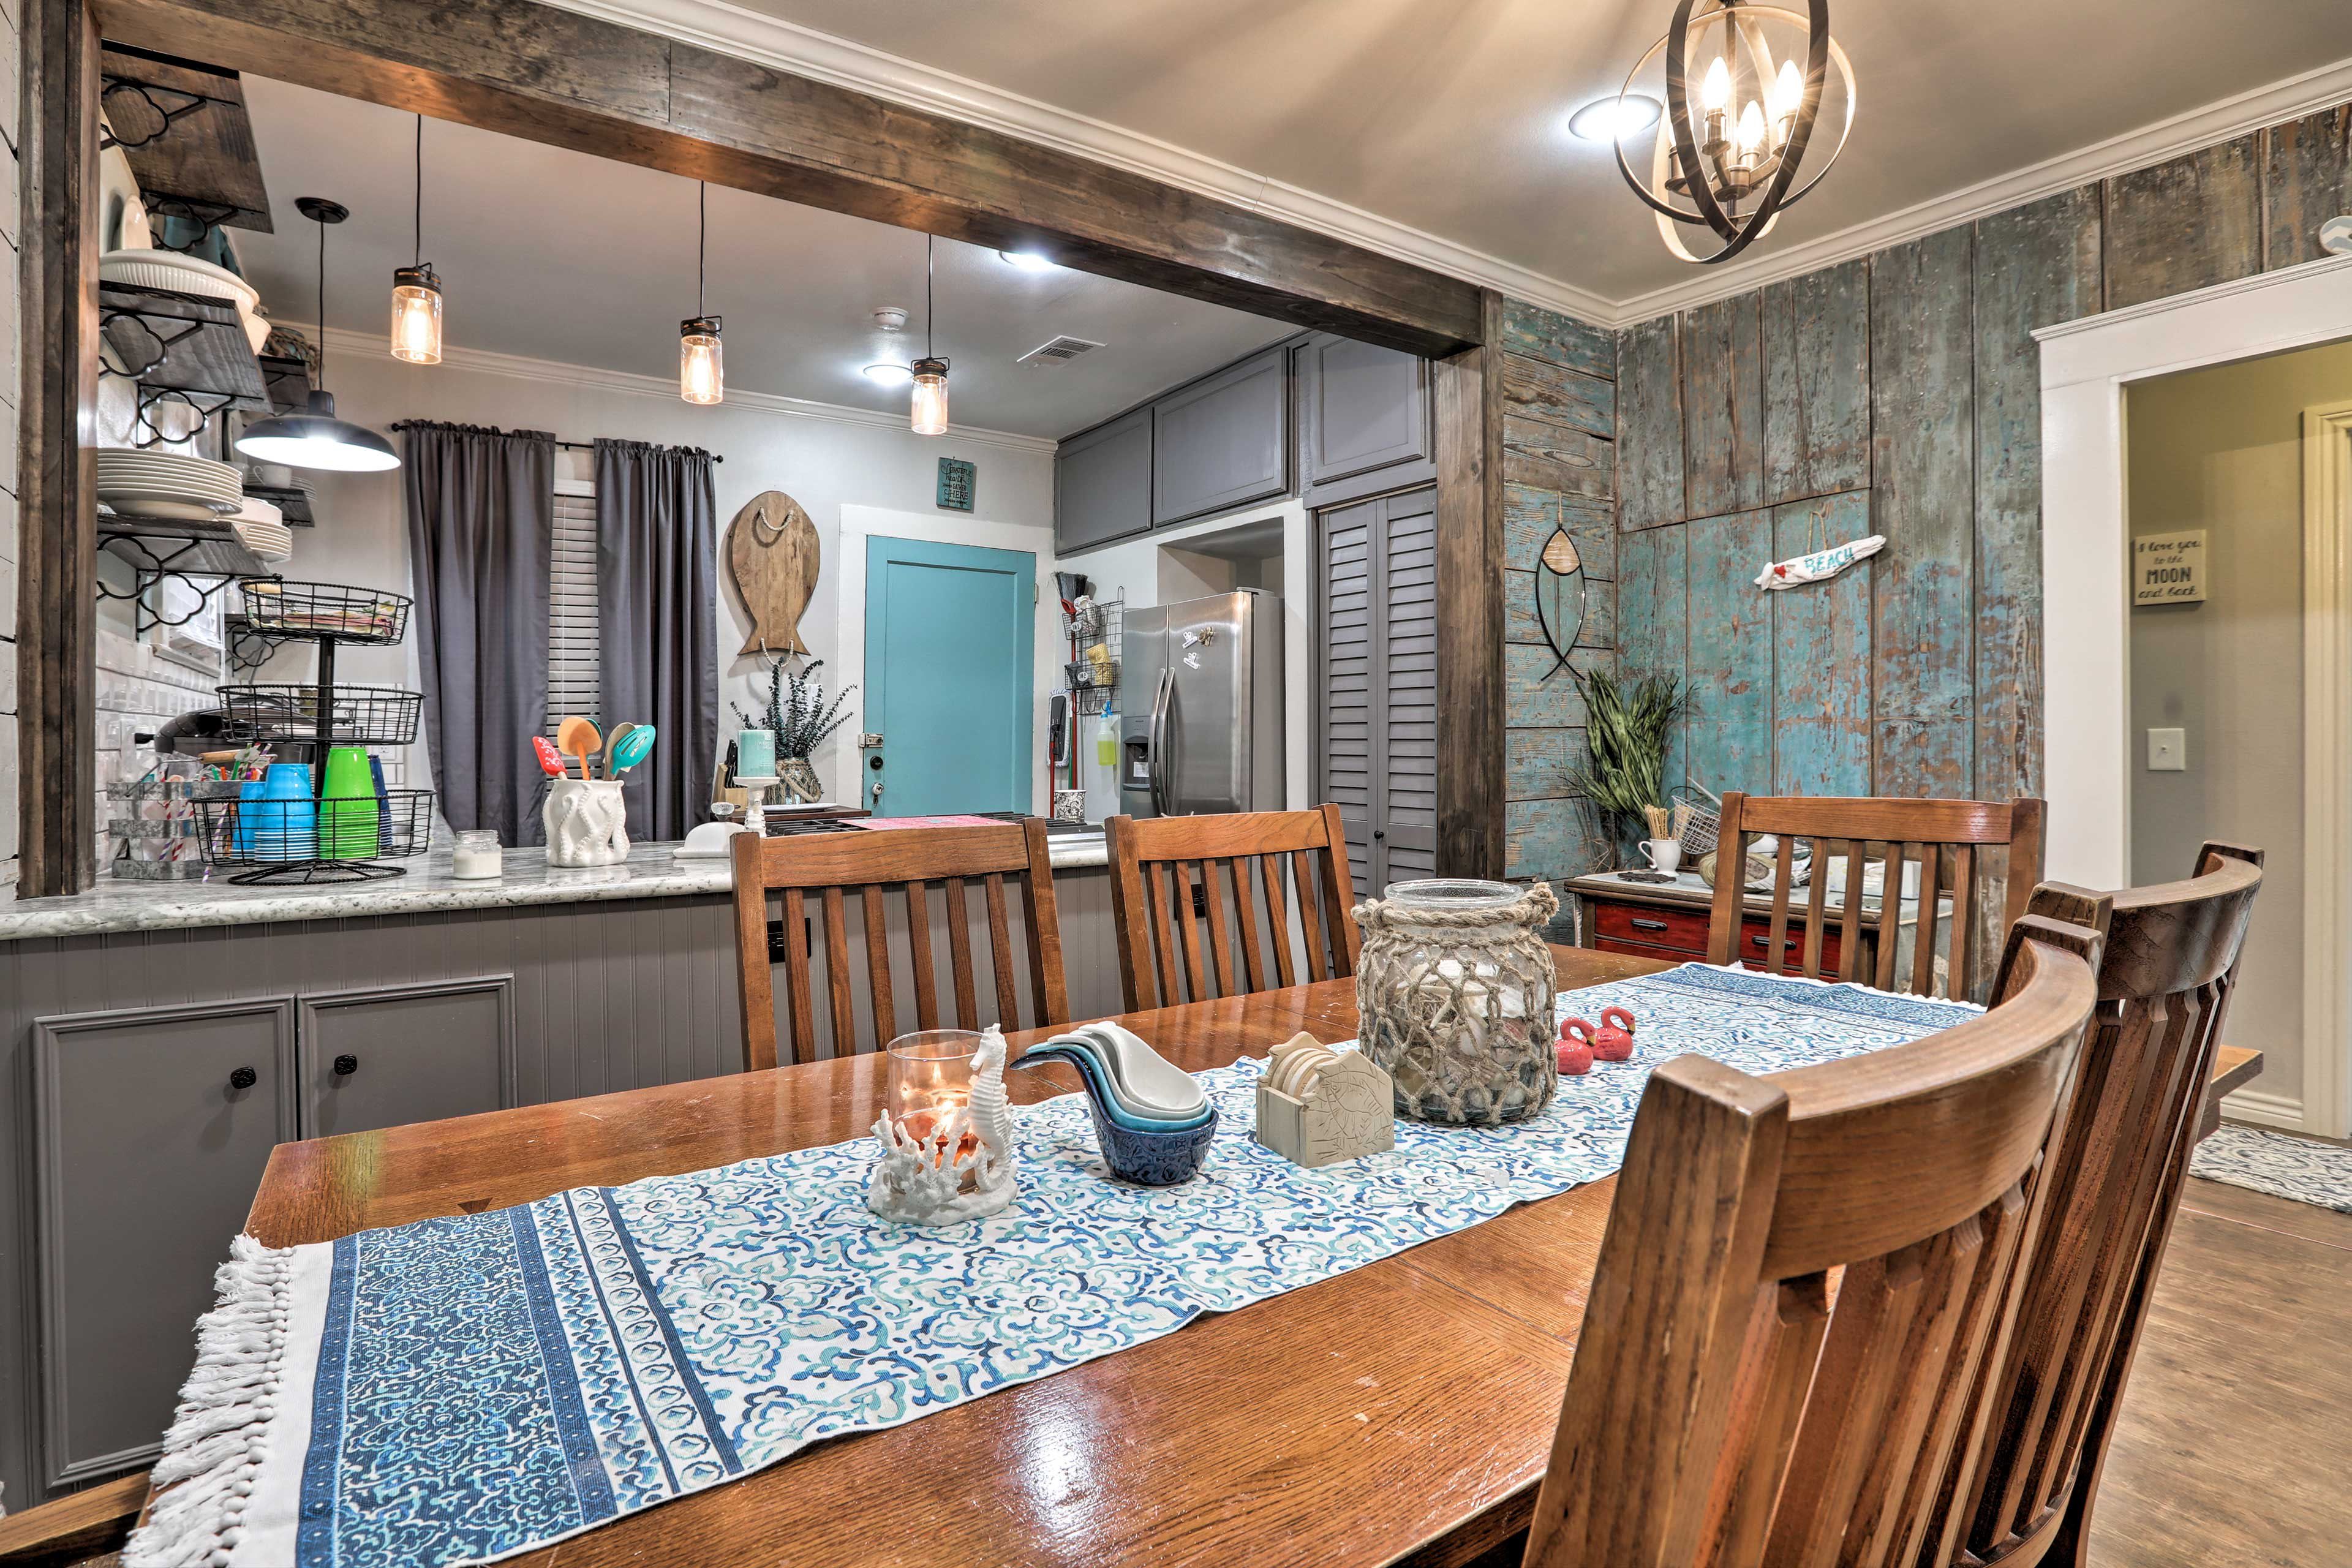 The 2-bedroom, 1-bathroom home is located in the East End Historical District.